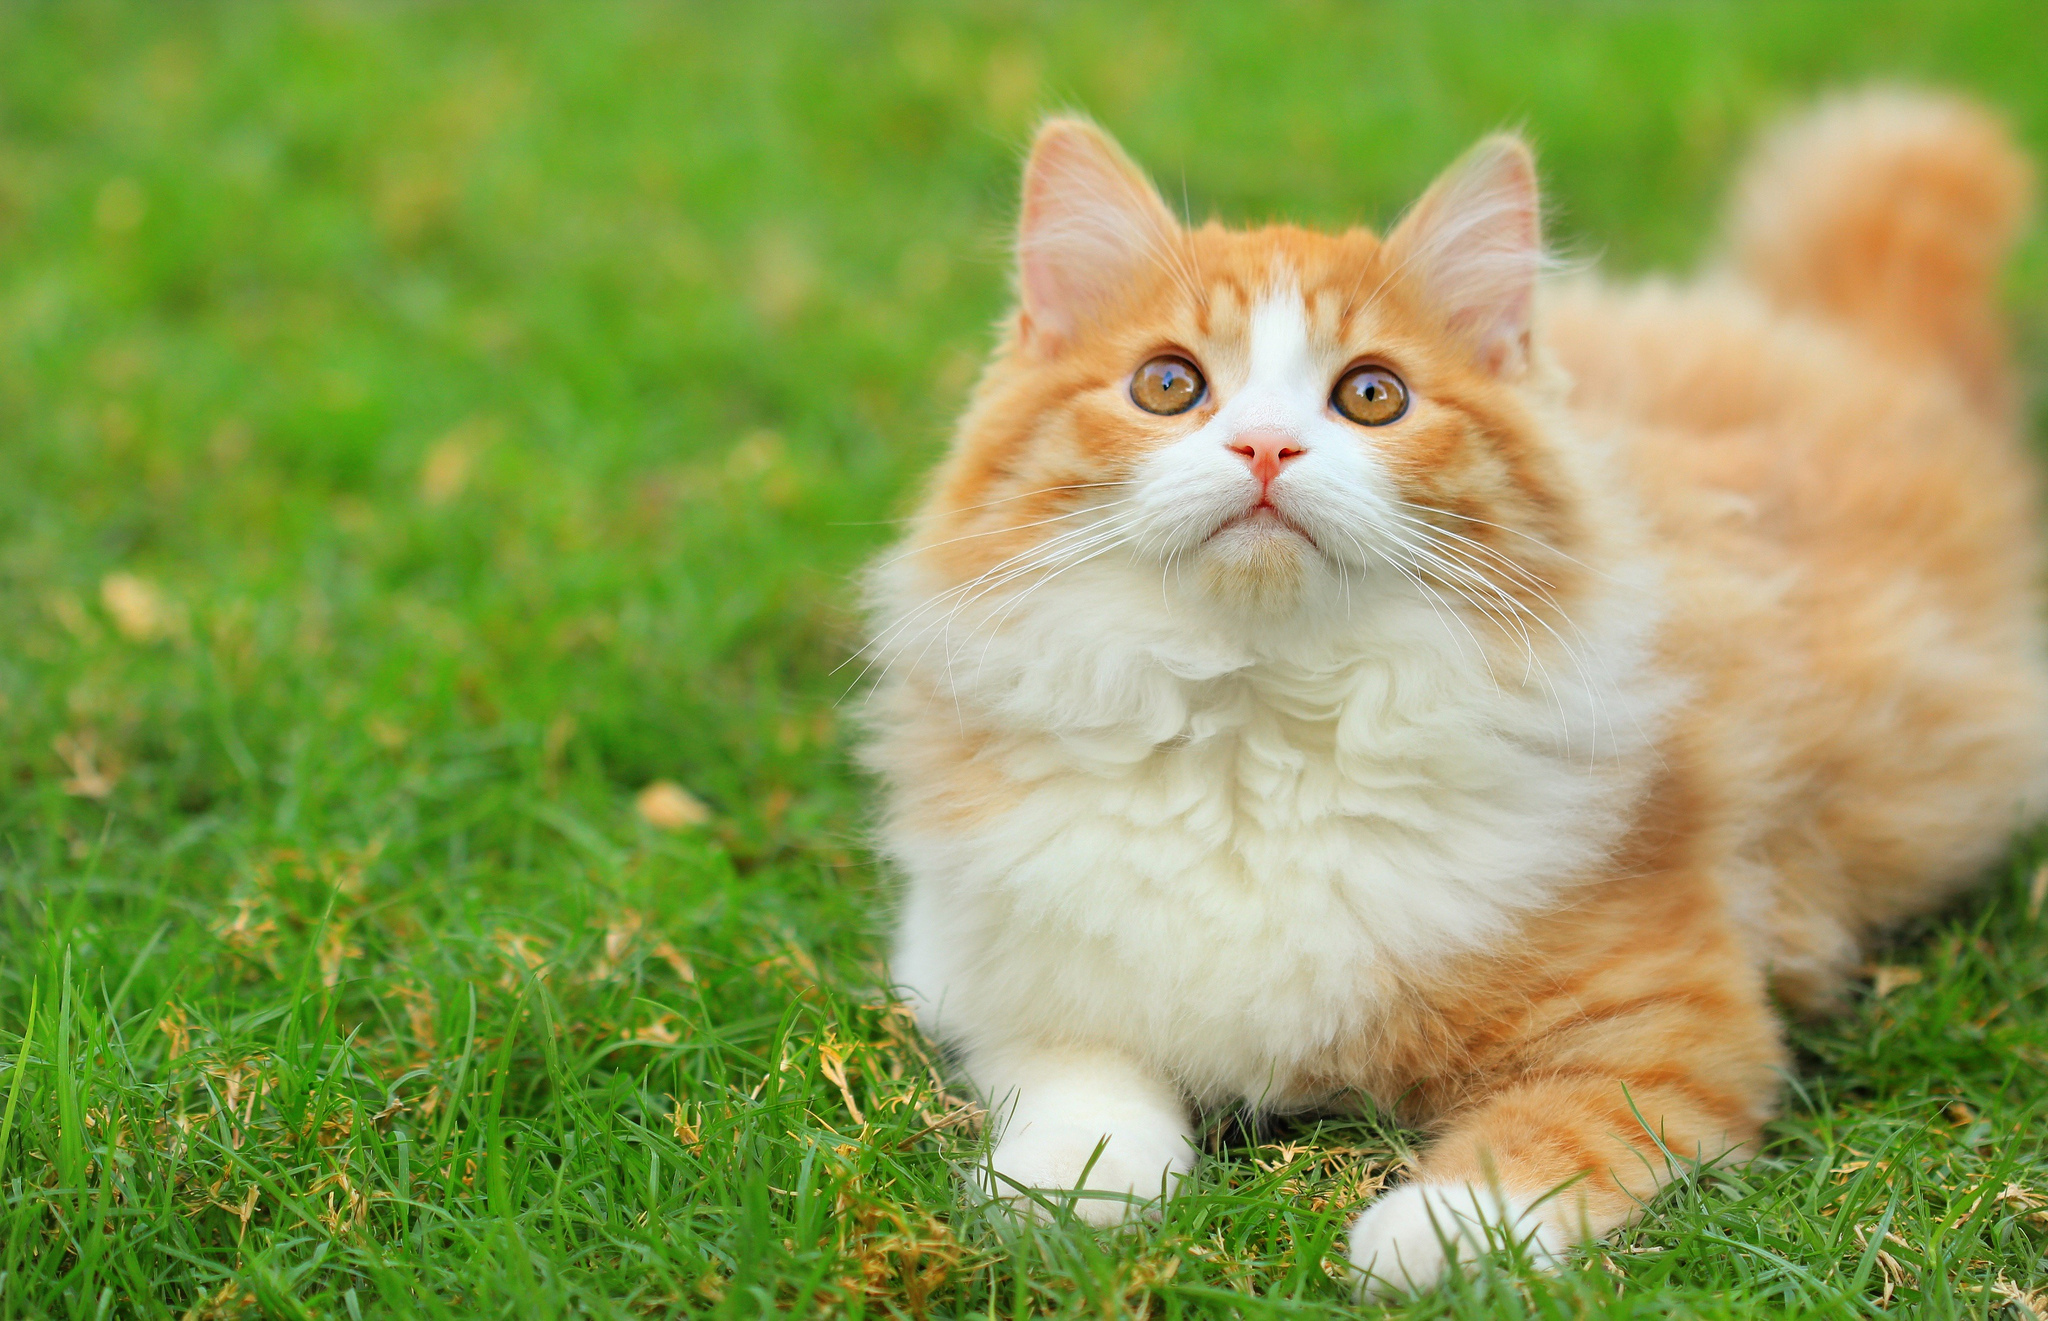 148891 Screensavers and Wallpapers Fluffy for phone. Download Animals, Grass, Cat, Fluffy, Greens, White-Red pictures for free